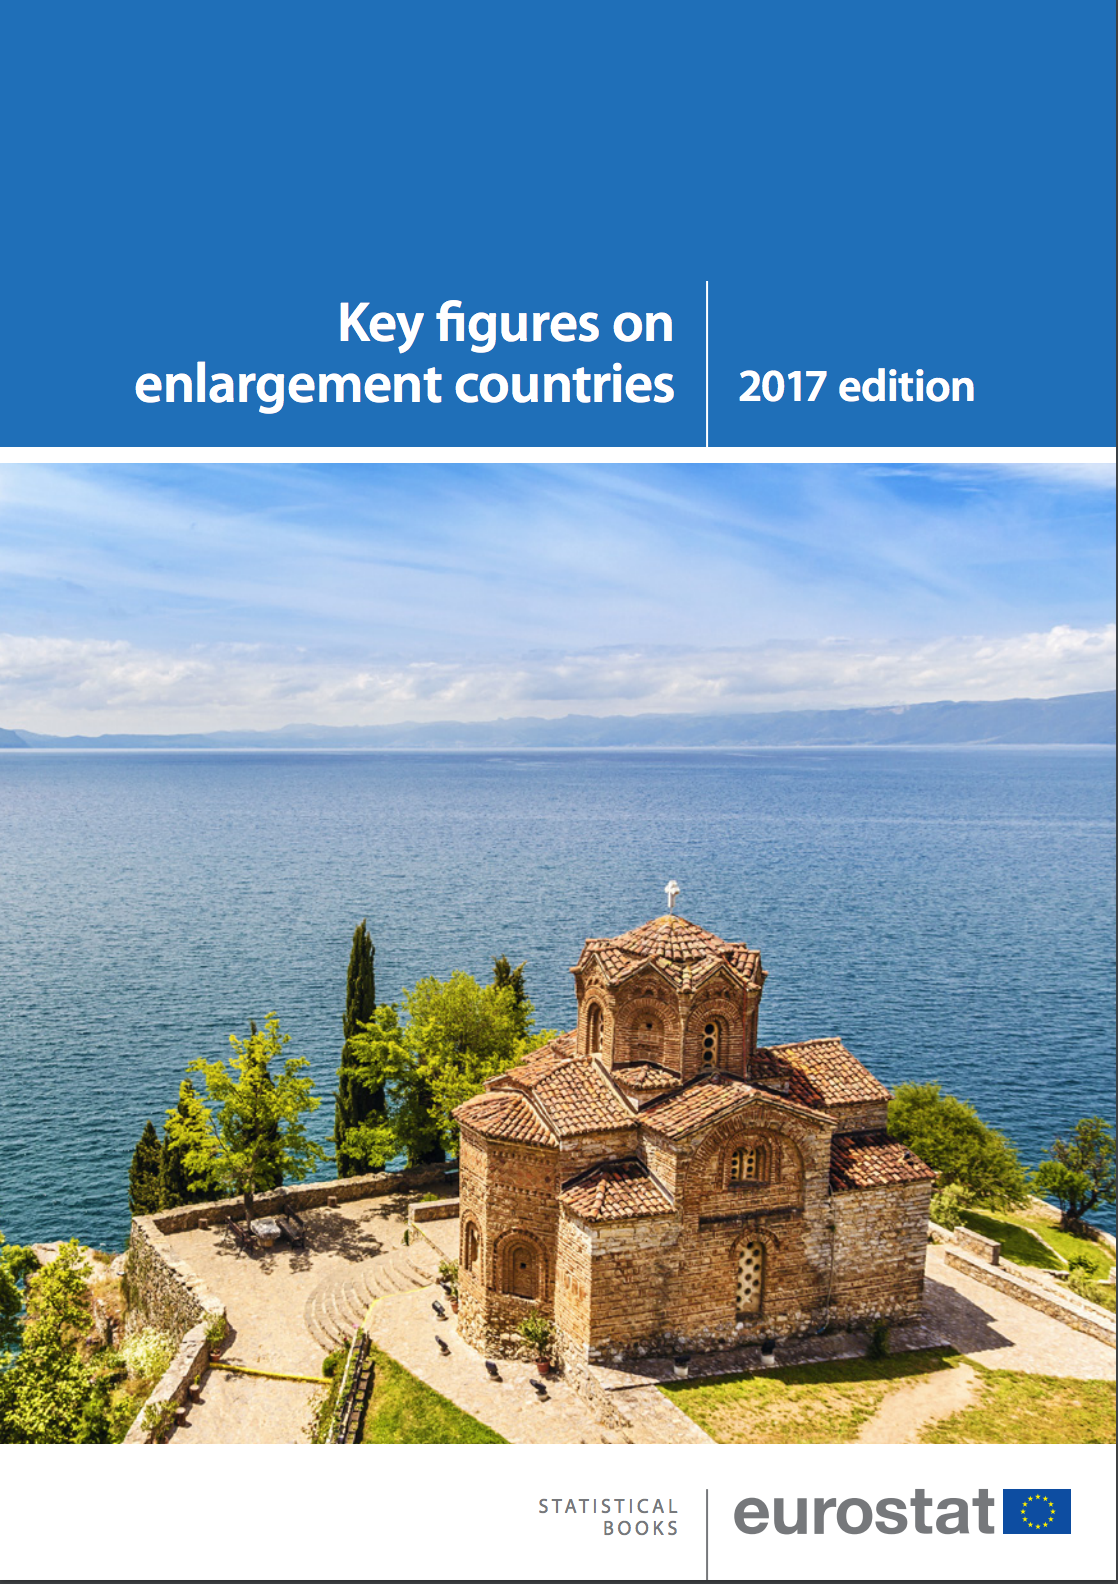 Eurostat: Key figures on enlargement countries - obálka